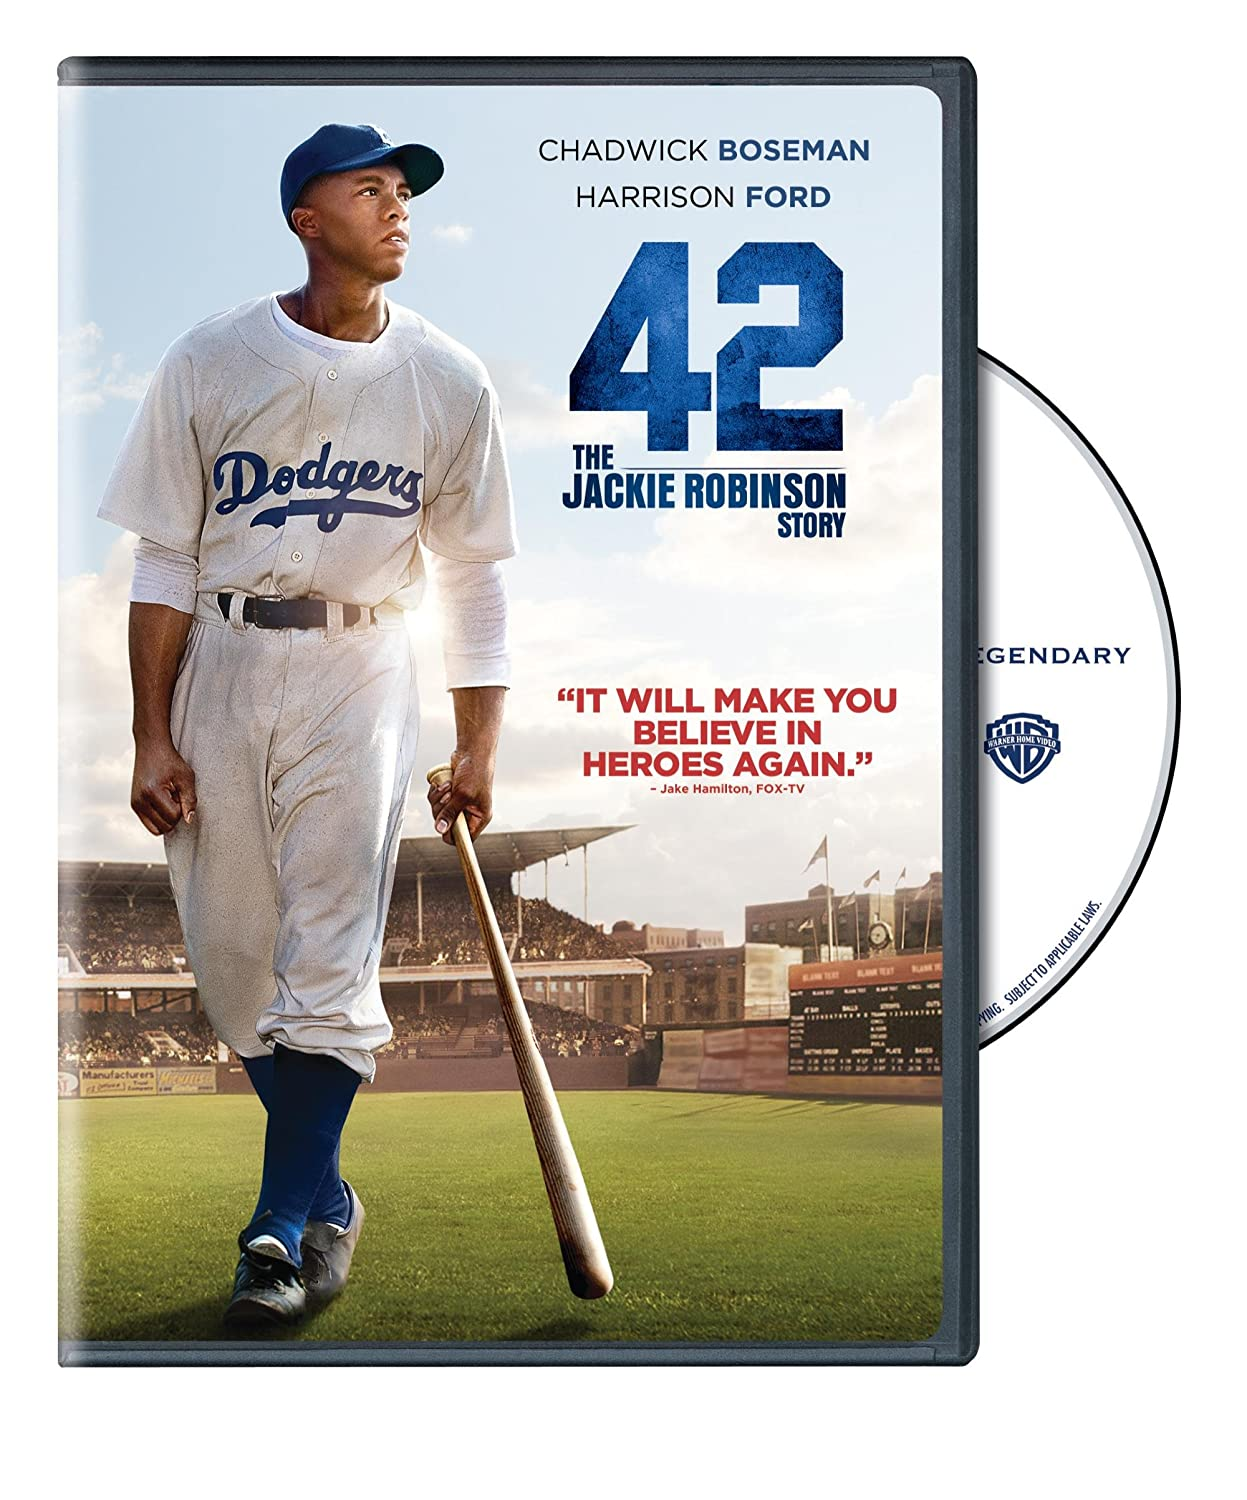 a biography of a slave jackie robinson Jackie robinson, born jack roosevelt robinson, is known for being the first african-american to play in major league baseball he was born on january 31, 1919 in cairo, georgia as the grandson of a slave.